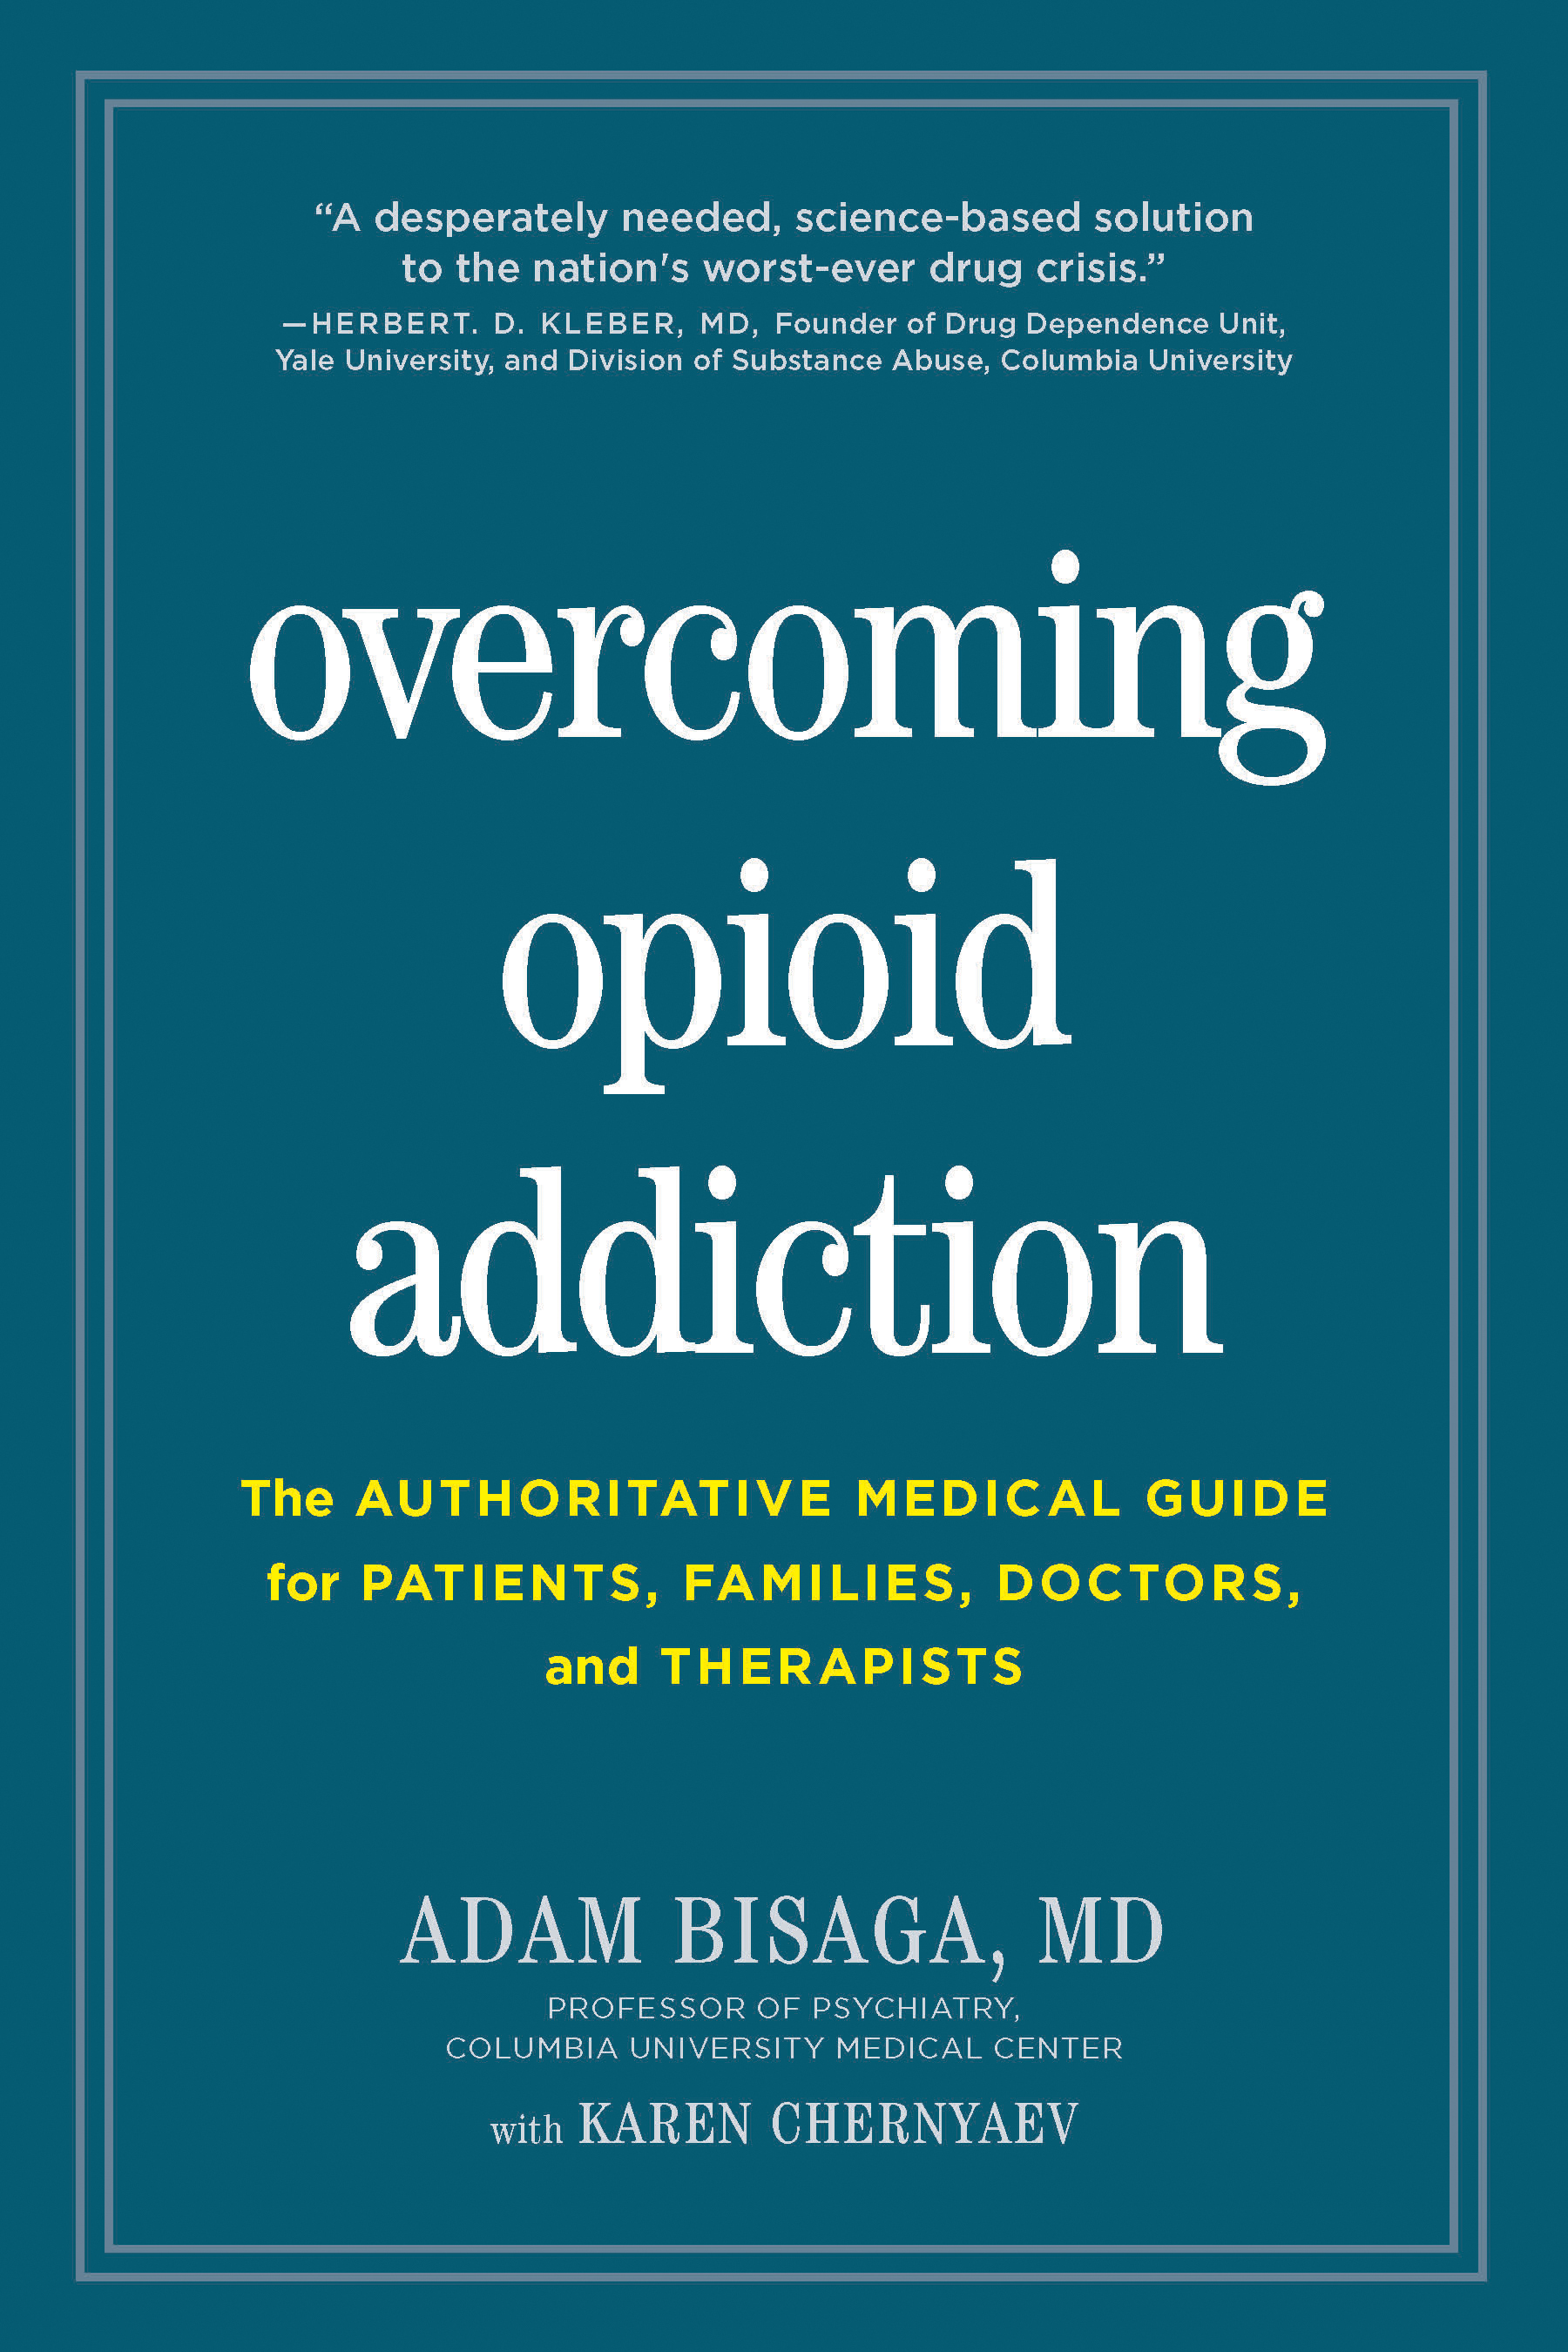 Overcoming Opioid Addiction The Authoritative Medical Guide for Patients, Families, Doctors, and Therapists